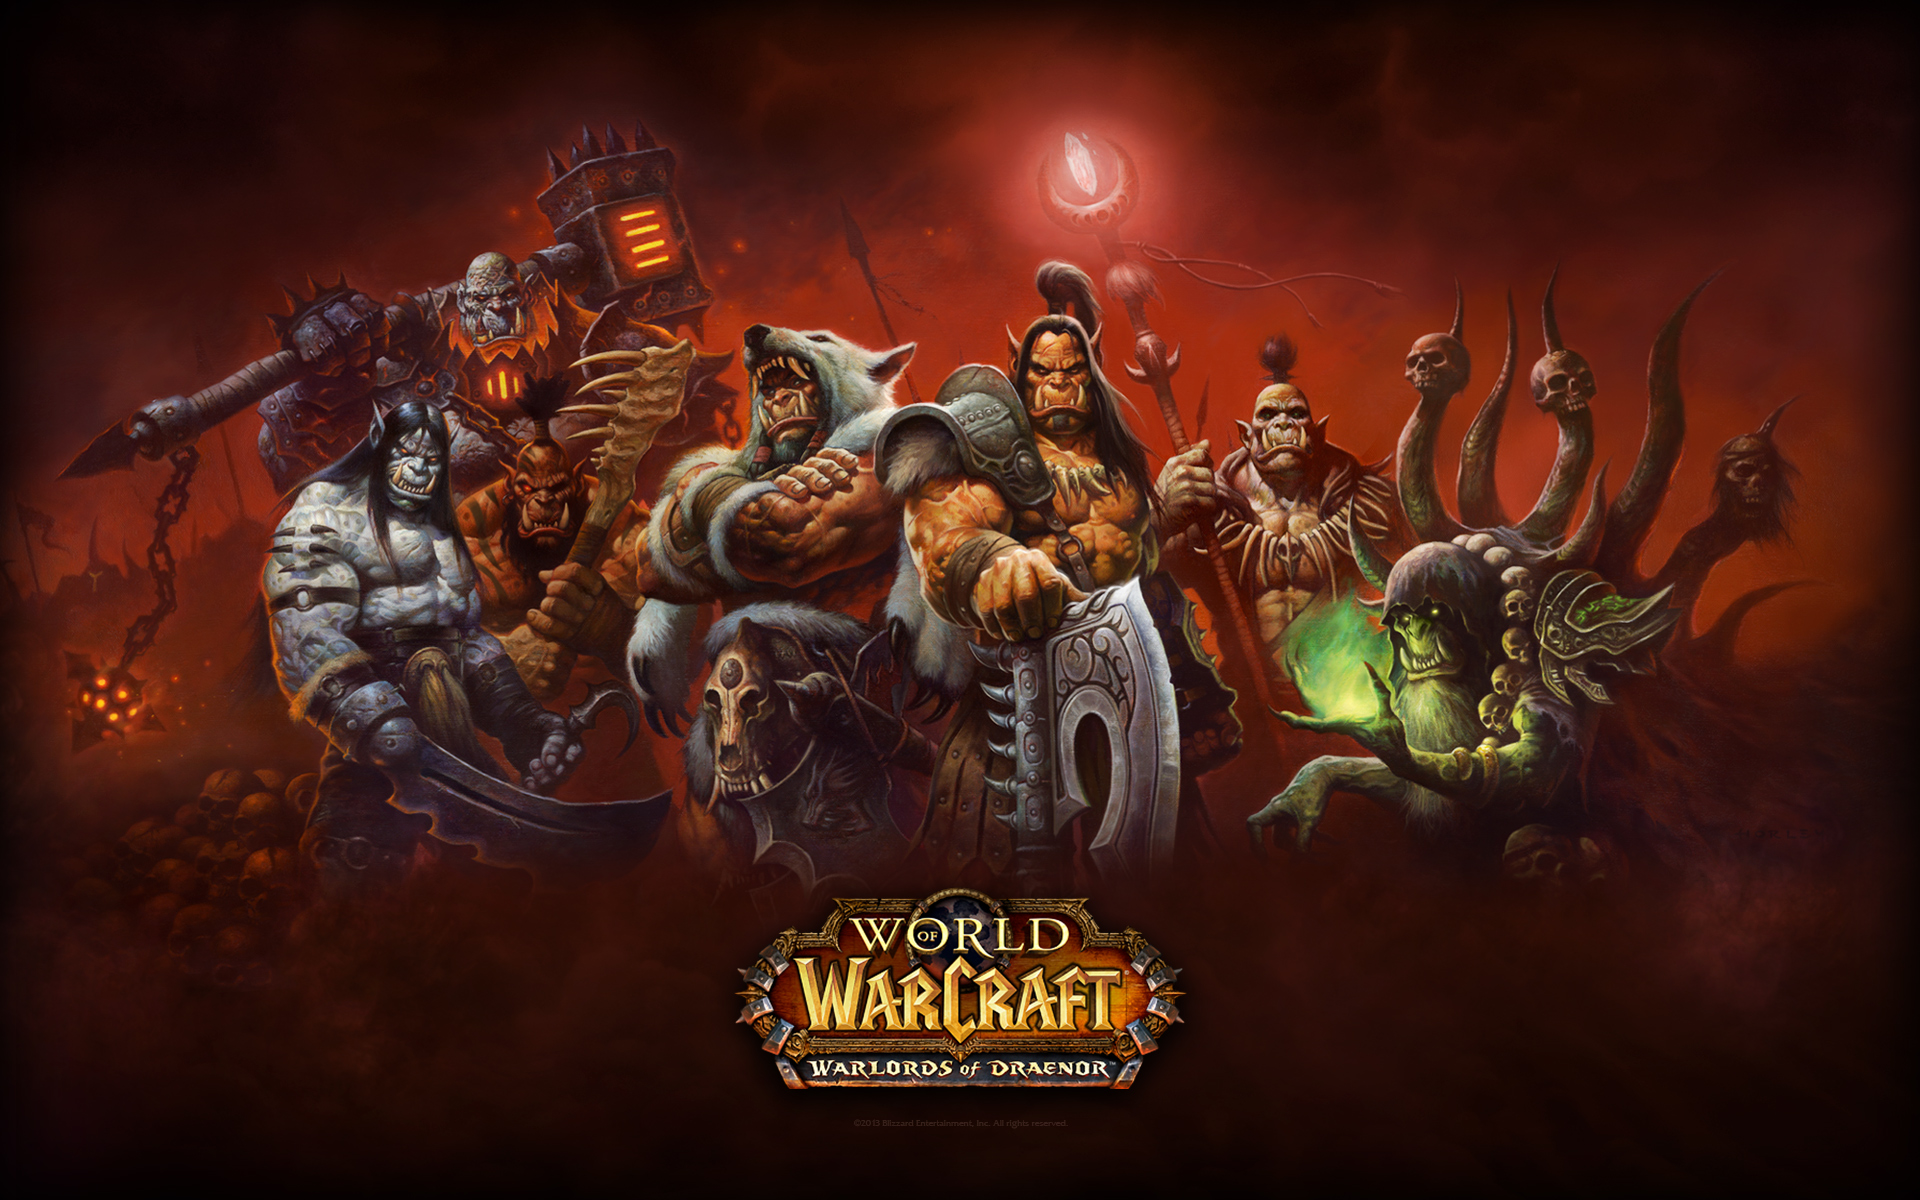 World of Warcraft : Warlords of Draenor